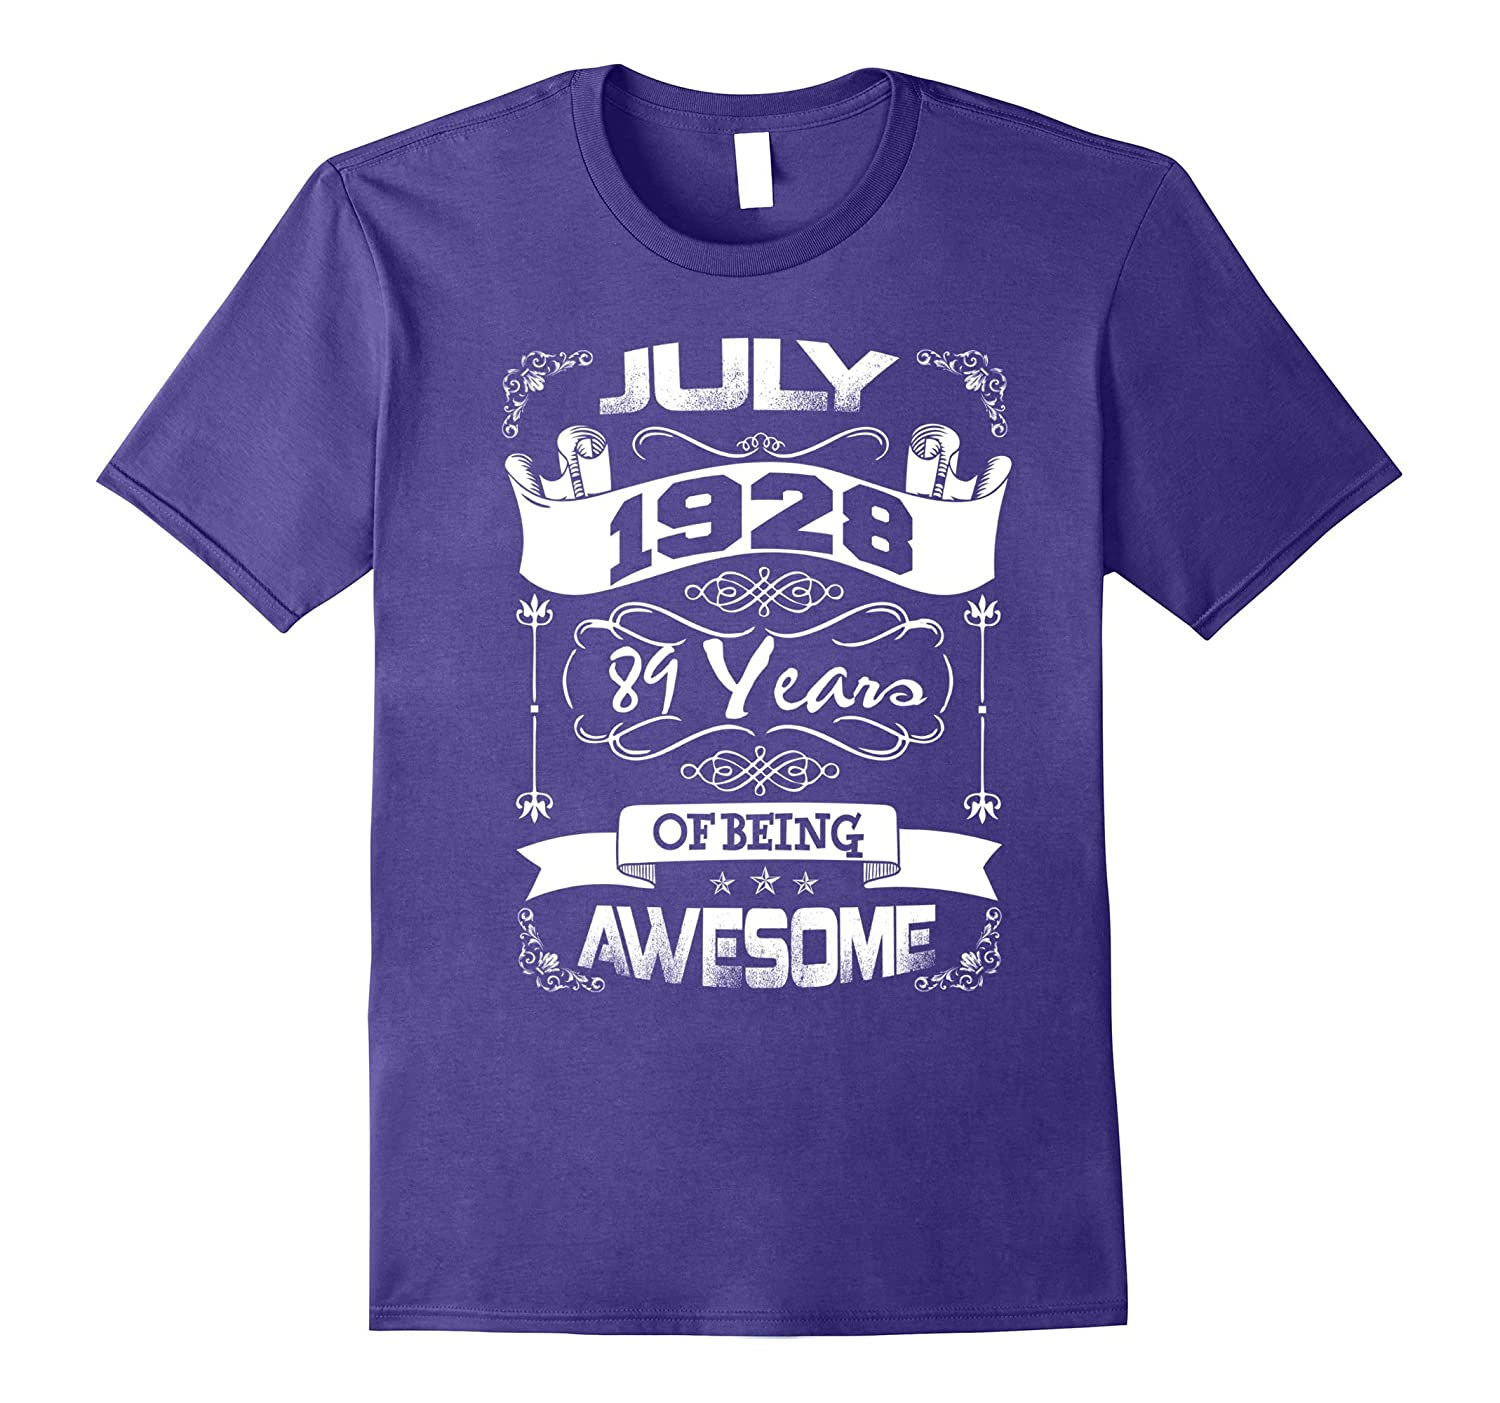 Awesome July 1928 - 89years of being awesome shirt-PL